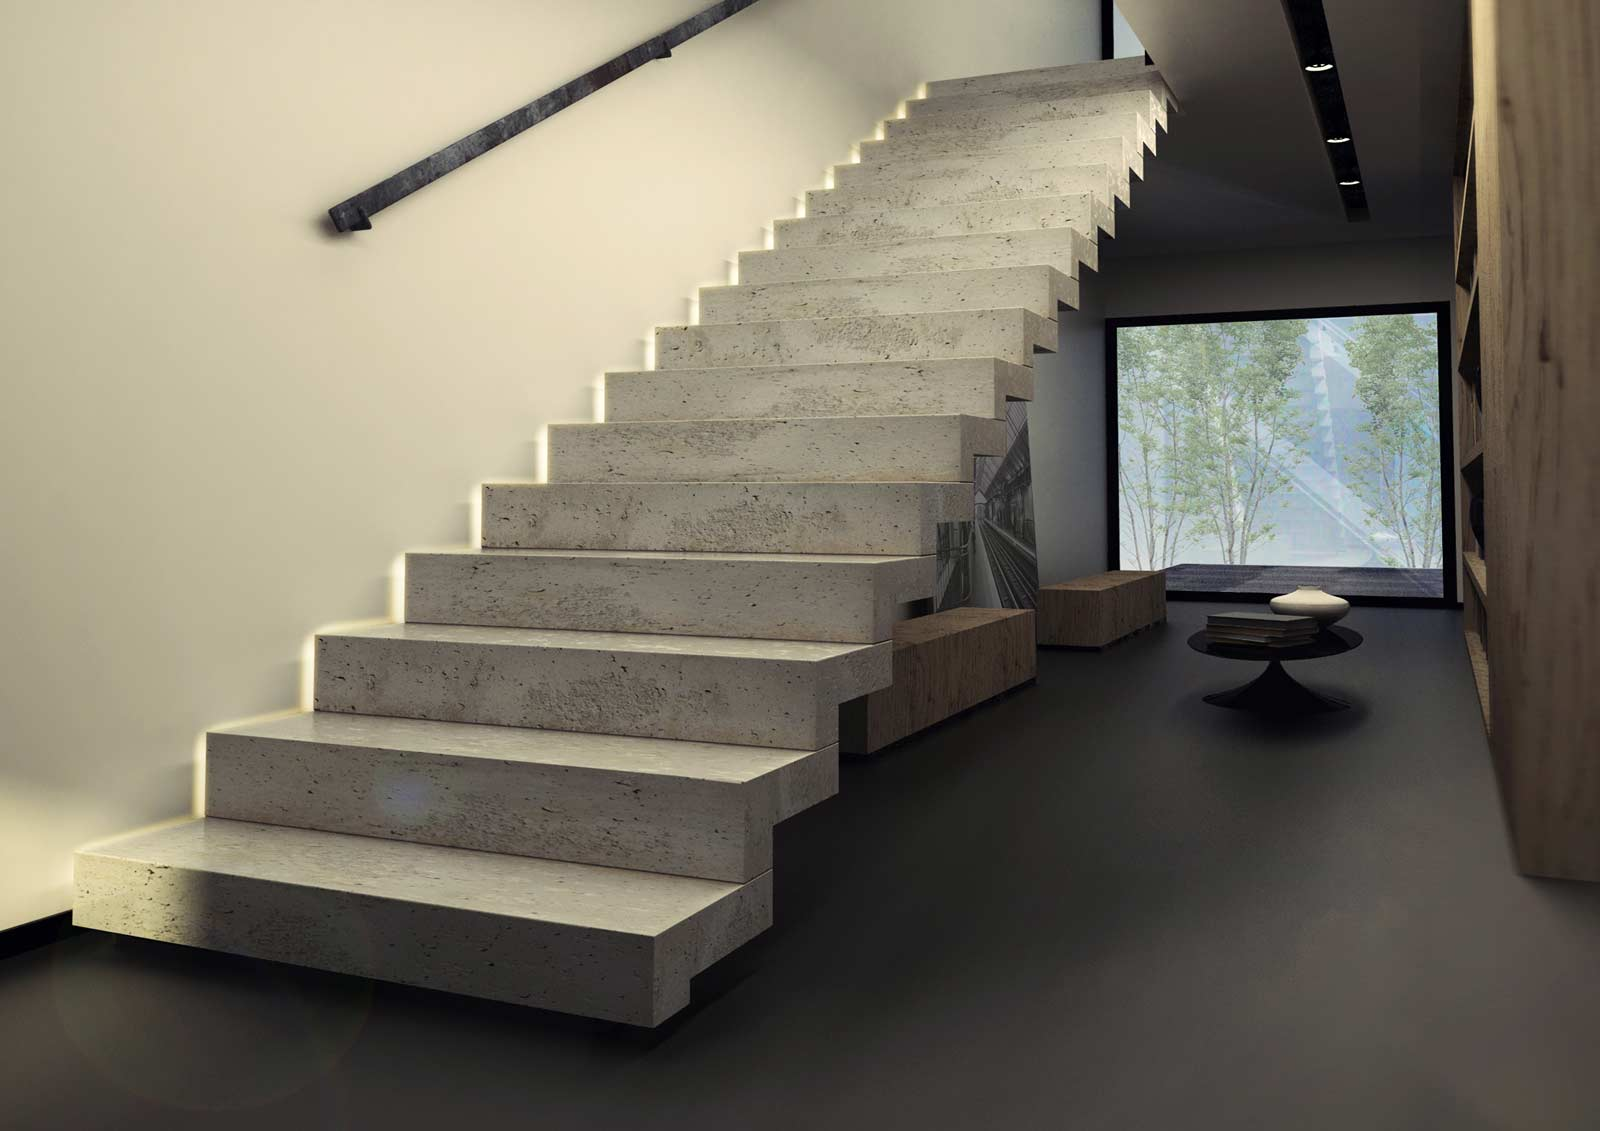 le top 10 des escaliers droits design le blog de loftboutik On escalier beton interieur